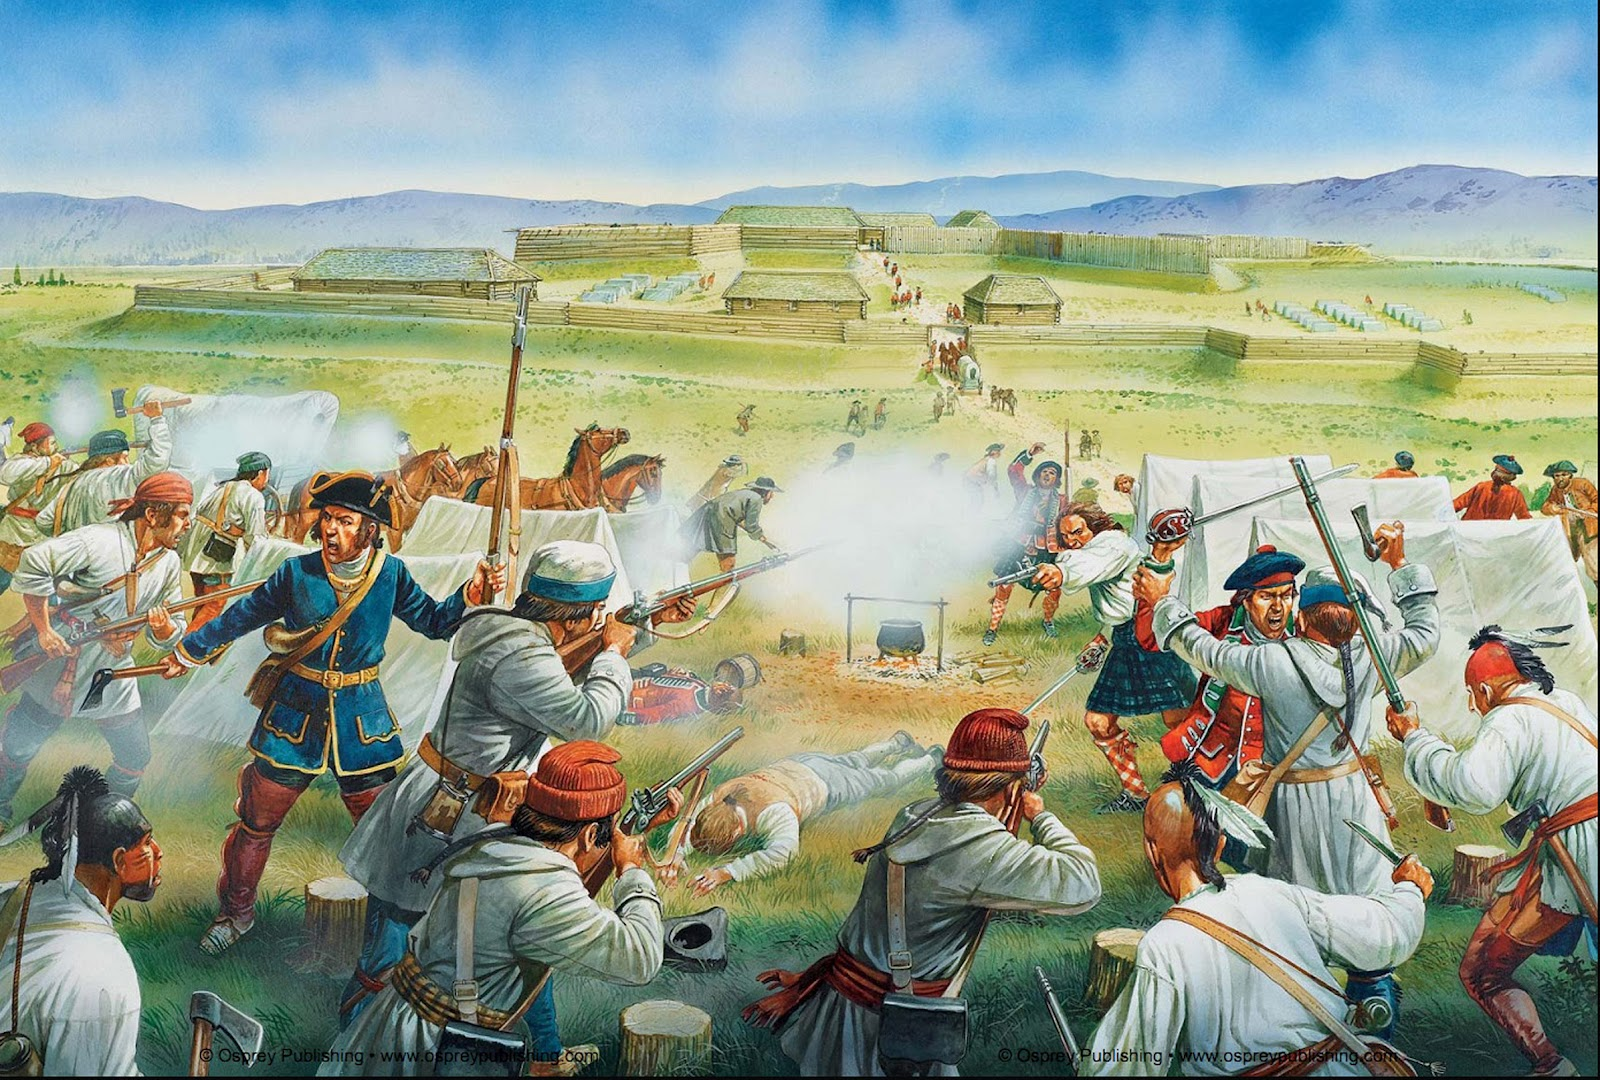 indian it revolution Indian mutiny: indian mutiny, widespread but unsuccessful rebellion against british rule in india in 1857-58.